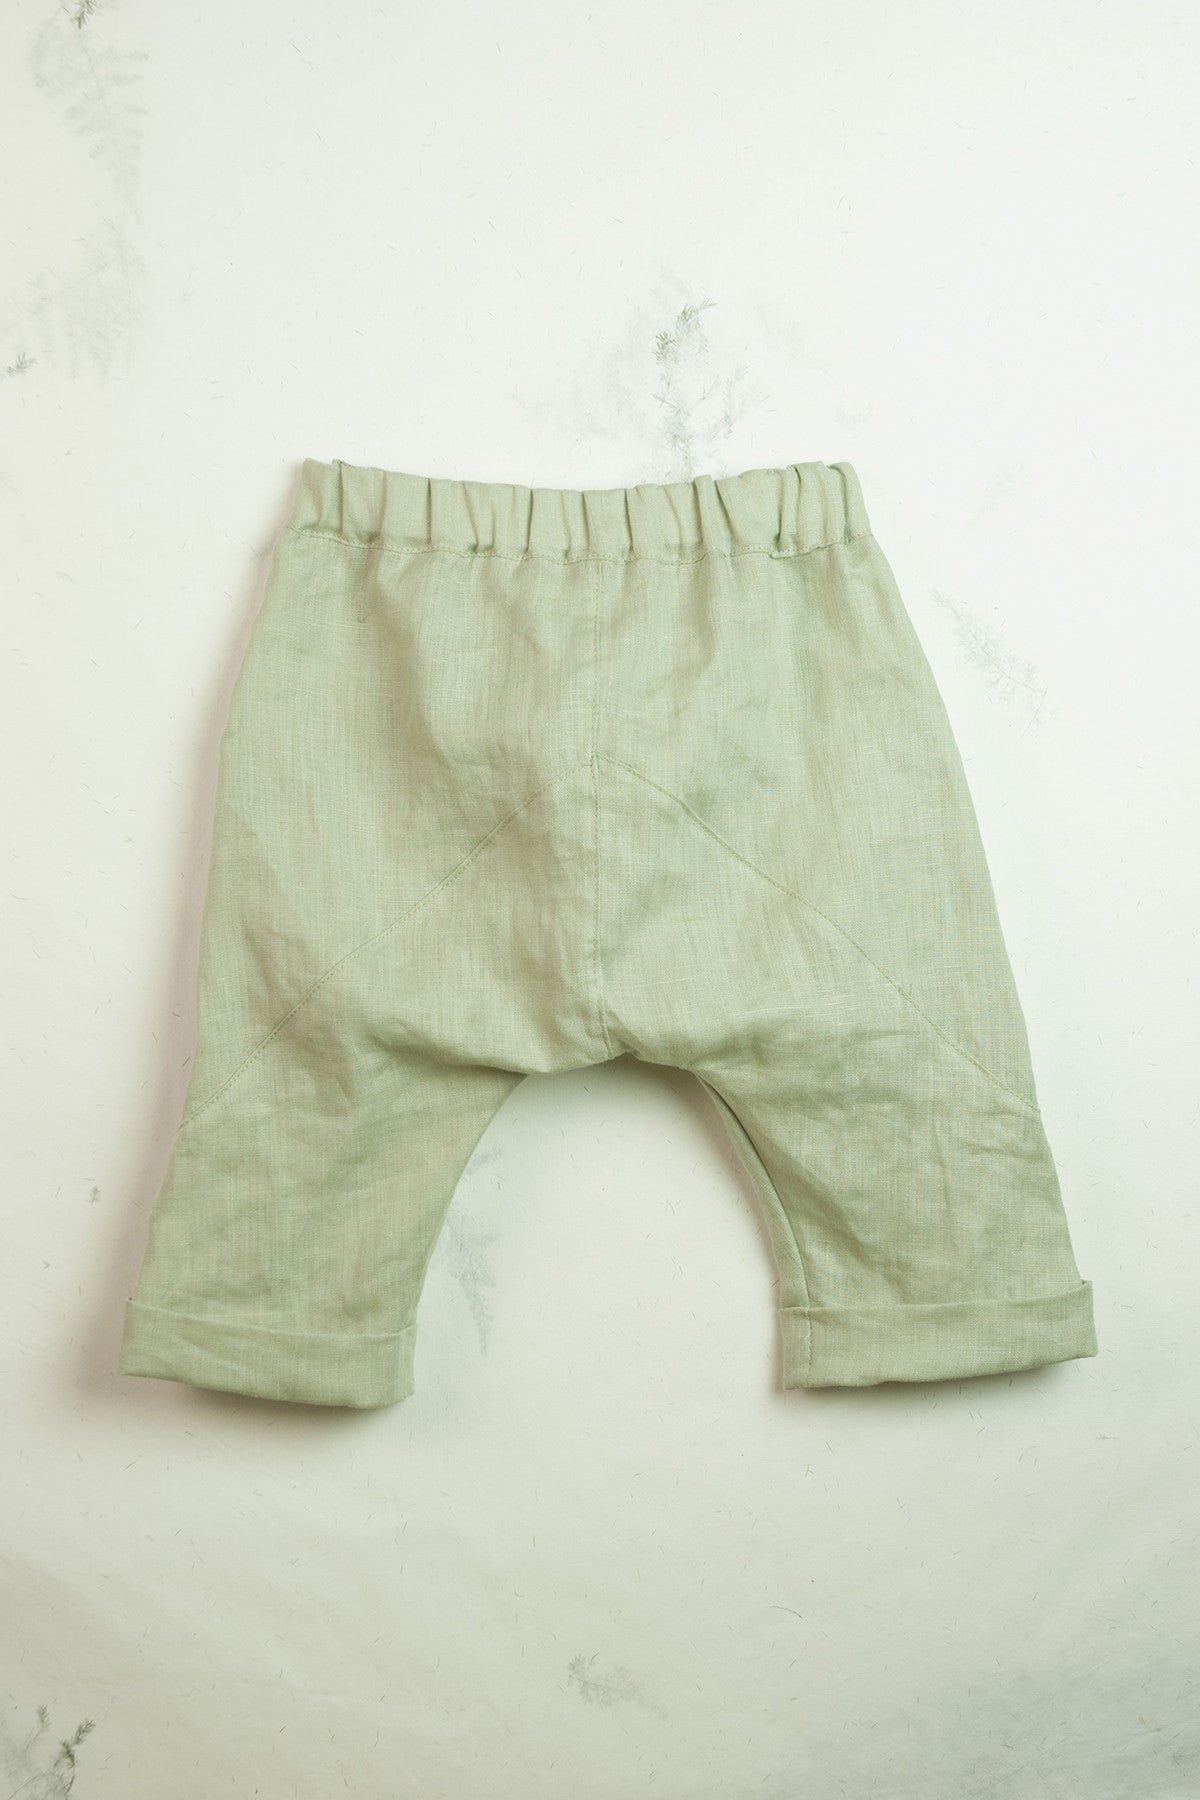 Popelin Green Bermuda Shorts - Ladida